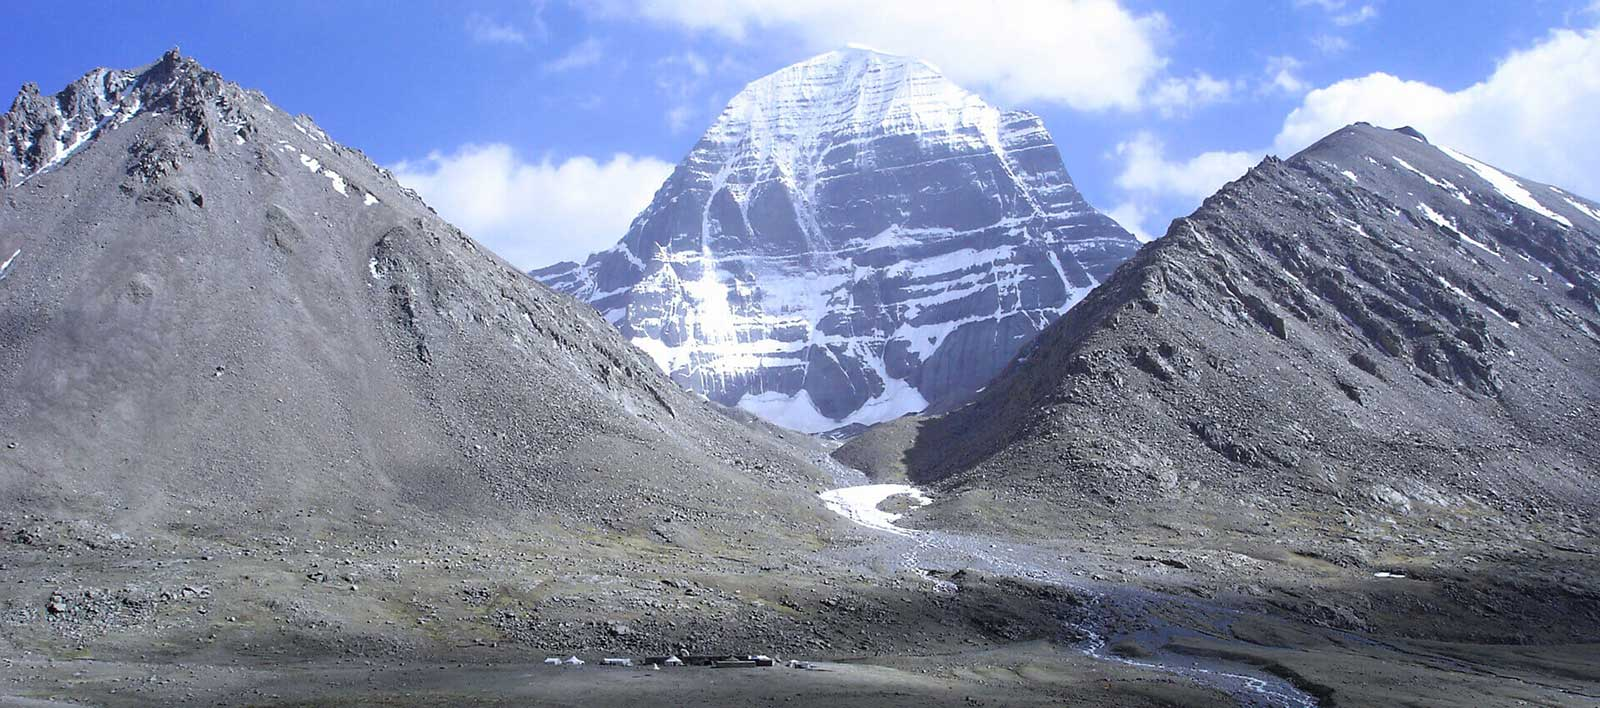 Mount-Kailash-by-Road